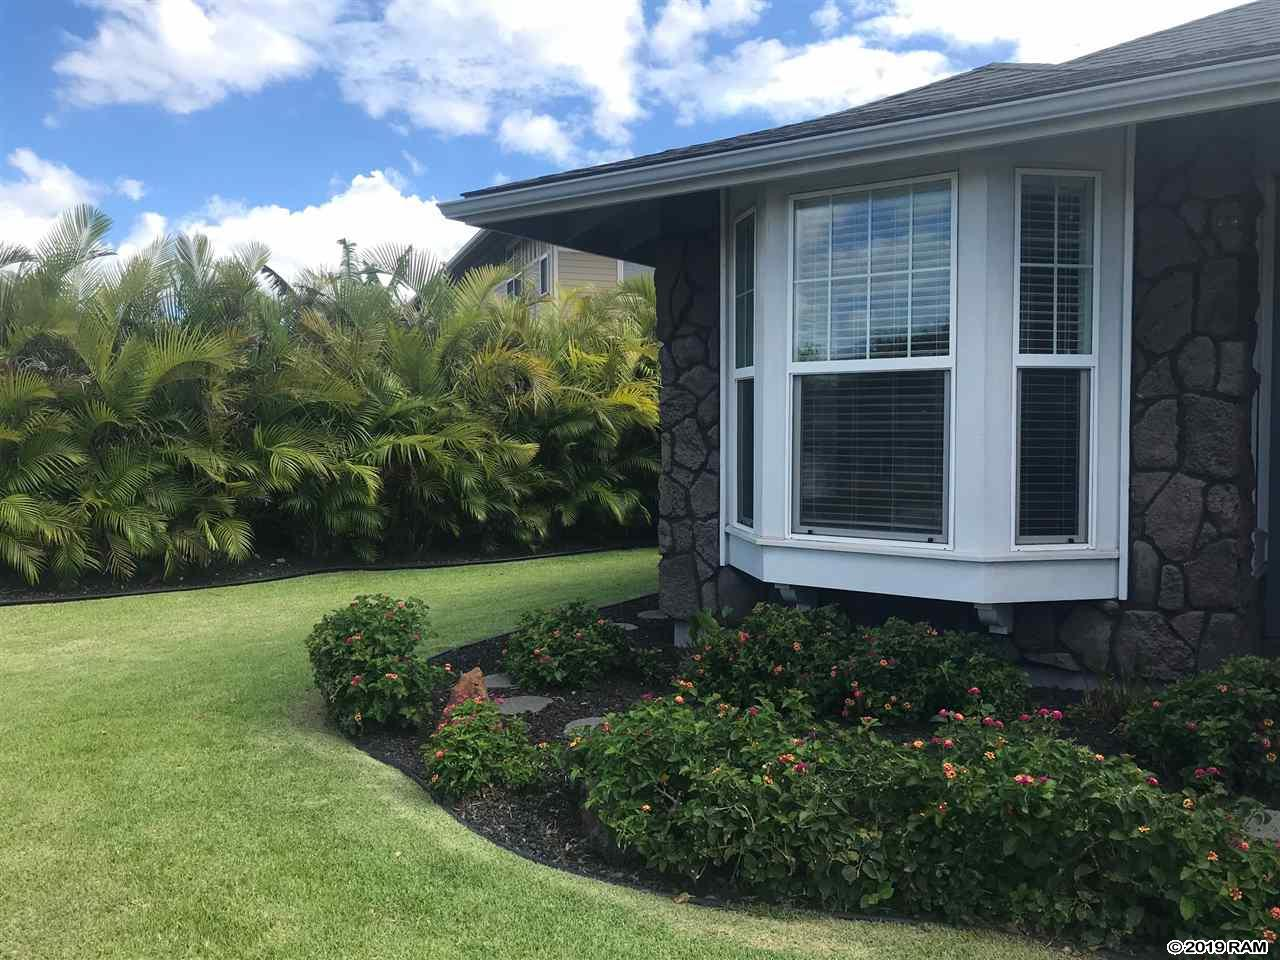 27 Unahe St in Parkways at Maui Lani